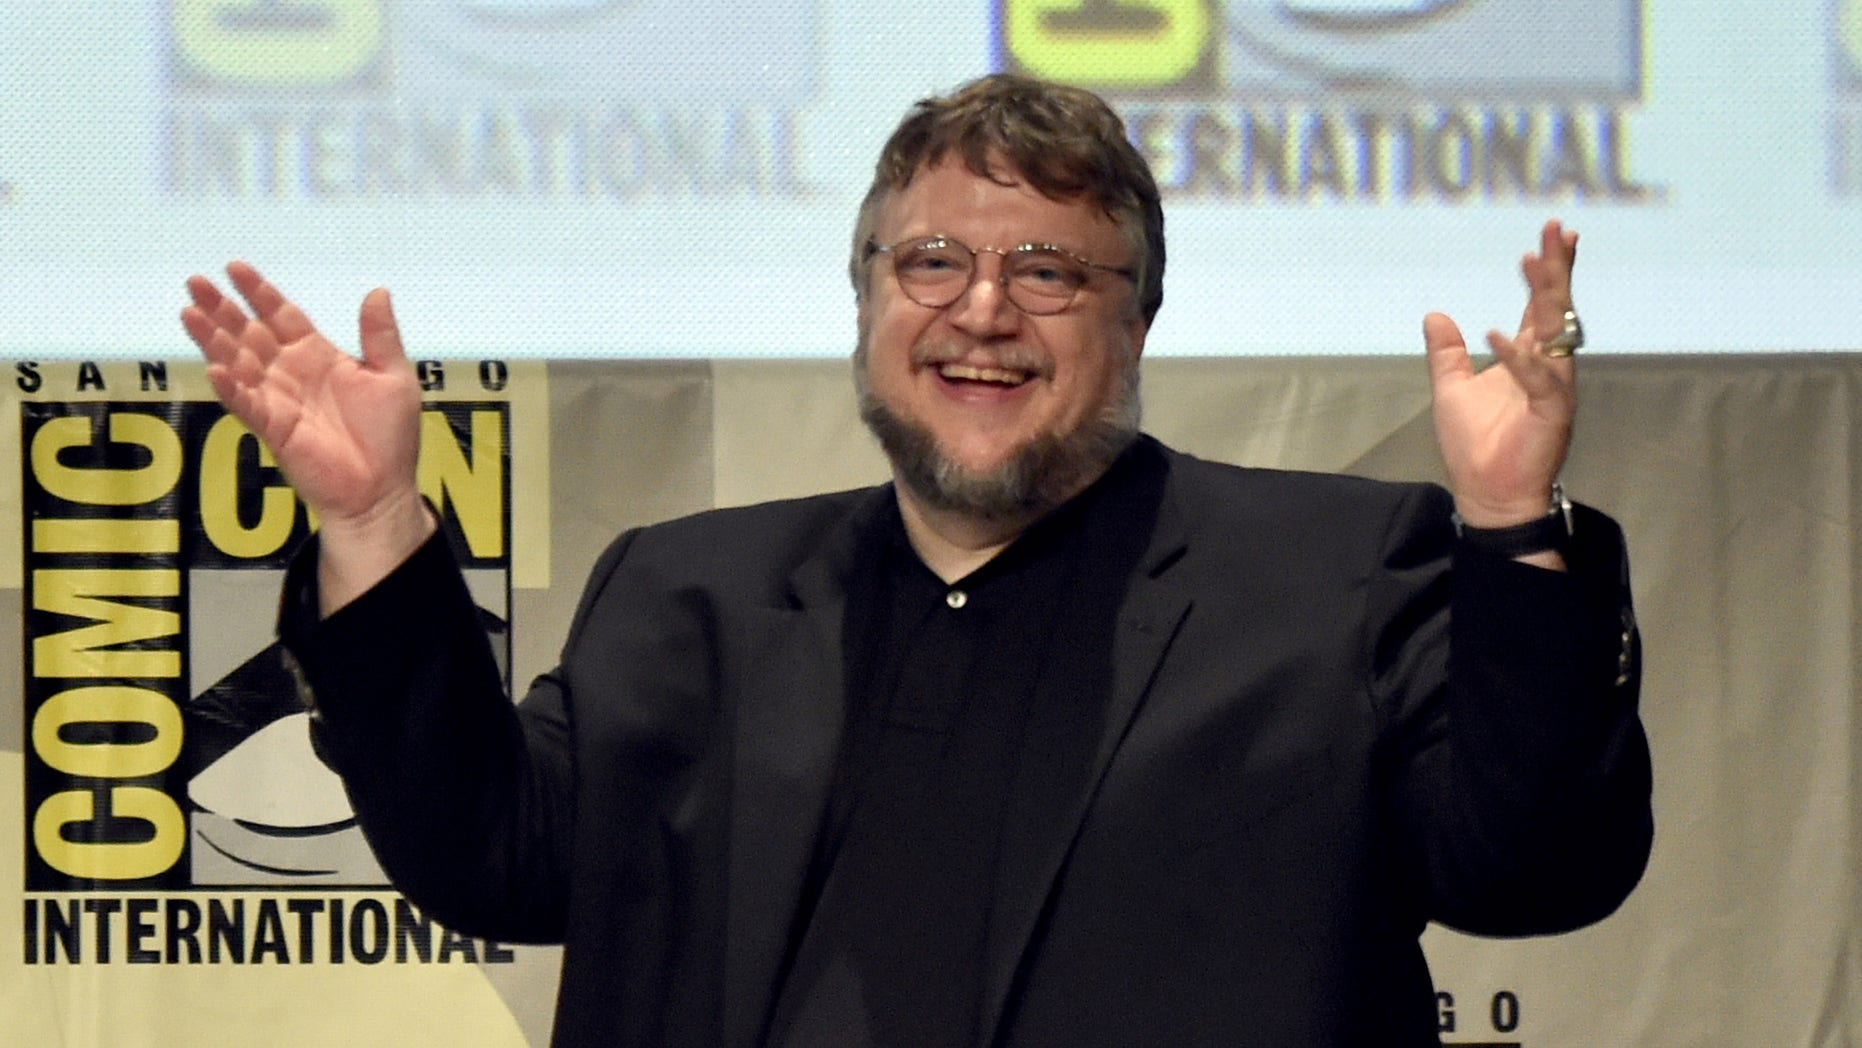 SAN DIEGO, CA - JULY 25:  Director Guillermo del Toro attends the 20th Century Fox presentation during Comic-Con International 2014 at San Diego Convention Center on July 25, 2014 in San Diego, California.  (Photo by Kevin Winter/Getty Images)